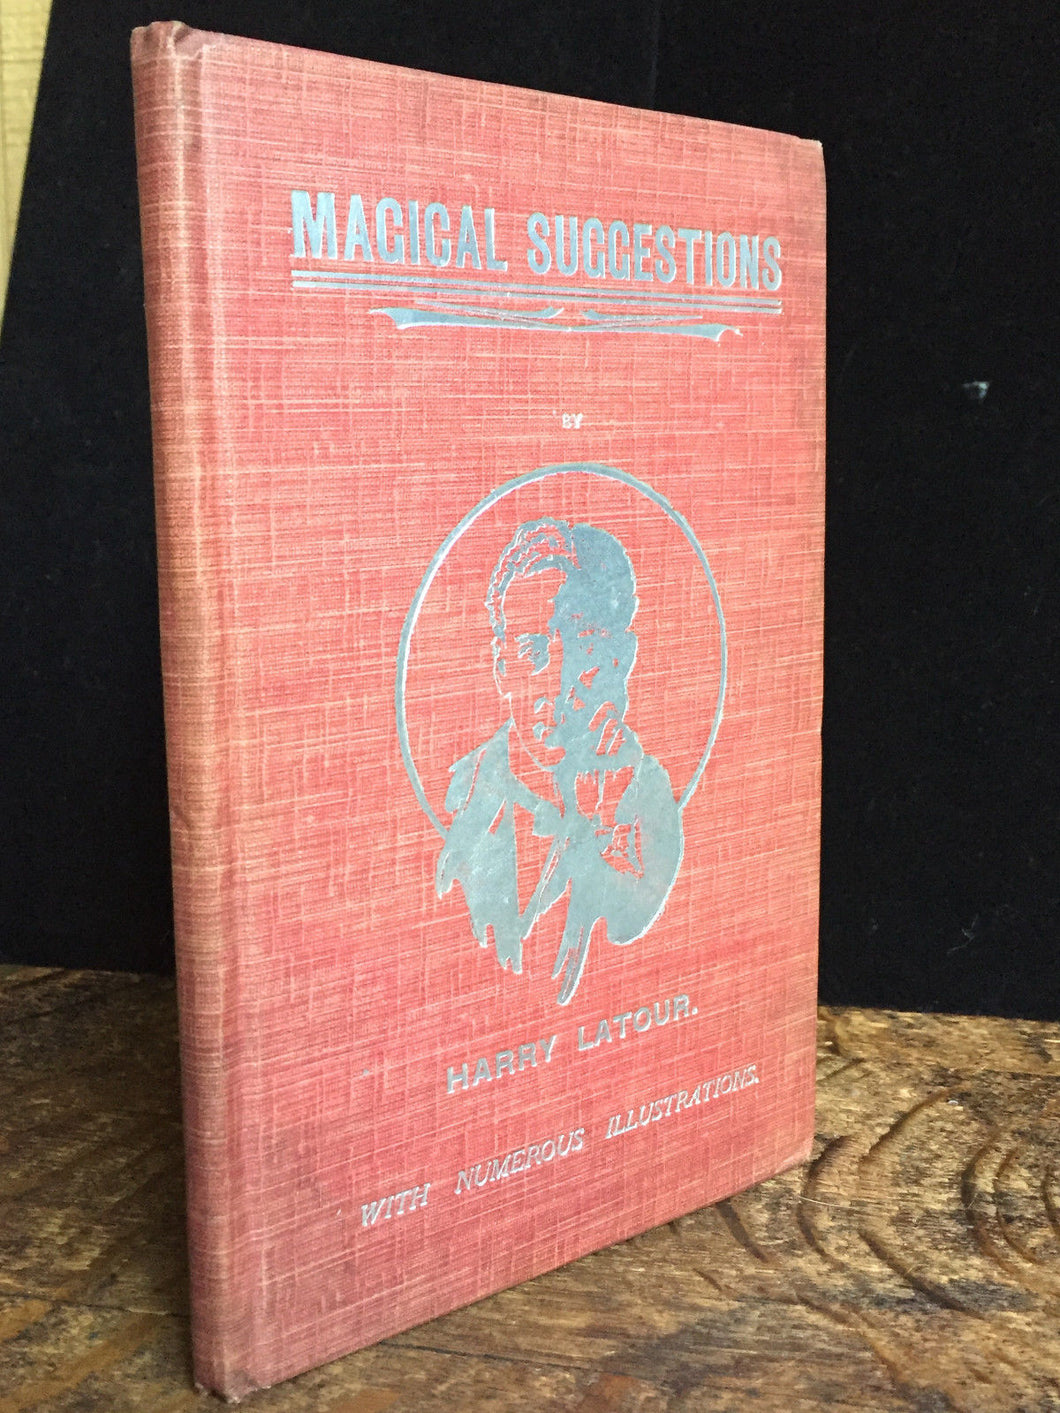 MAGICAL SUGGESTIONS by HARRY LATOUR 1st / 1st, 1921 HC, Illustrated